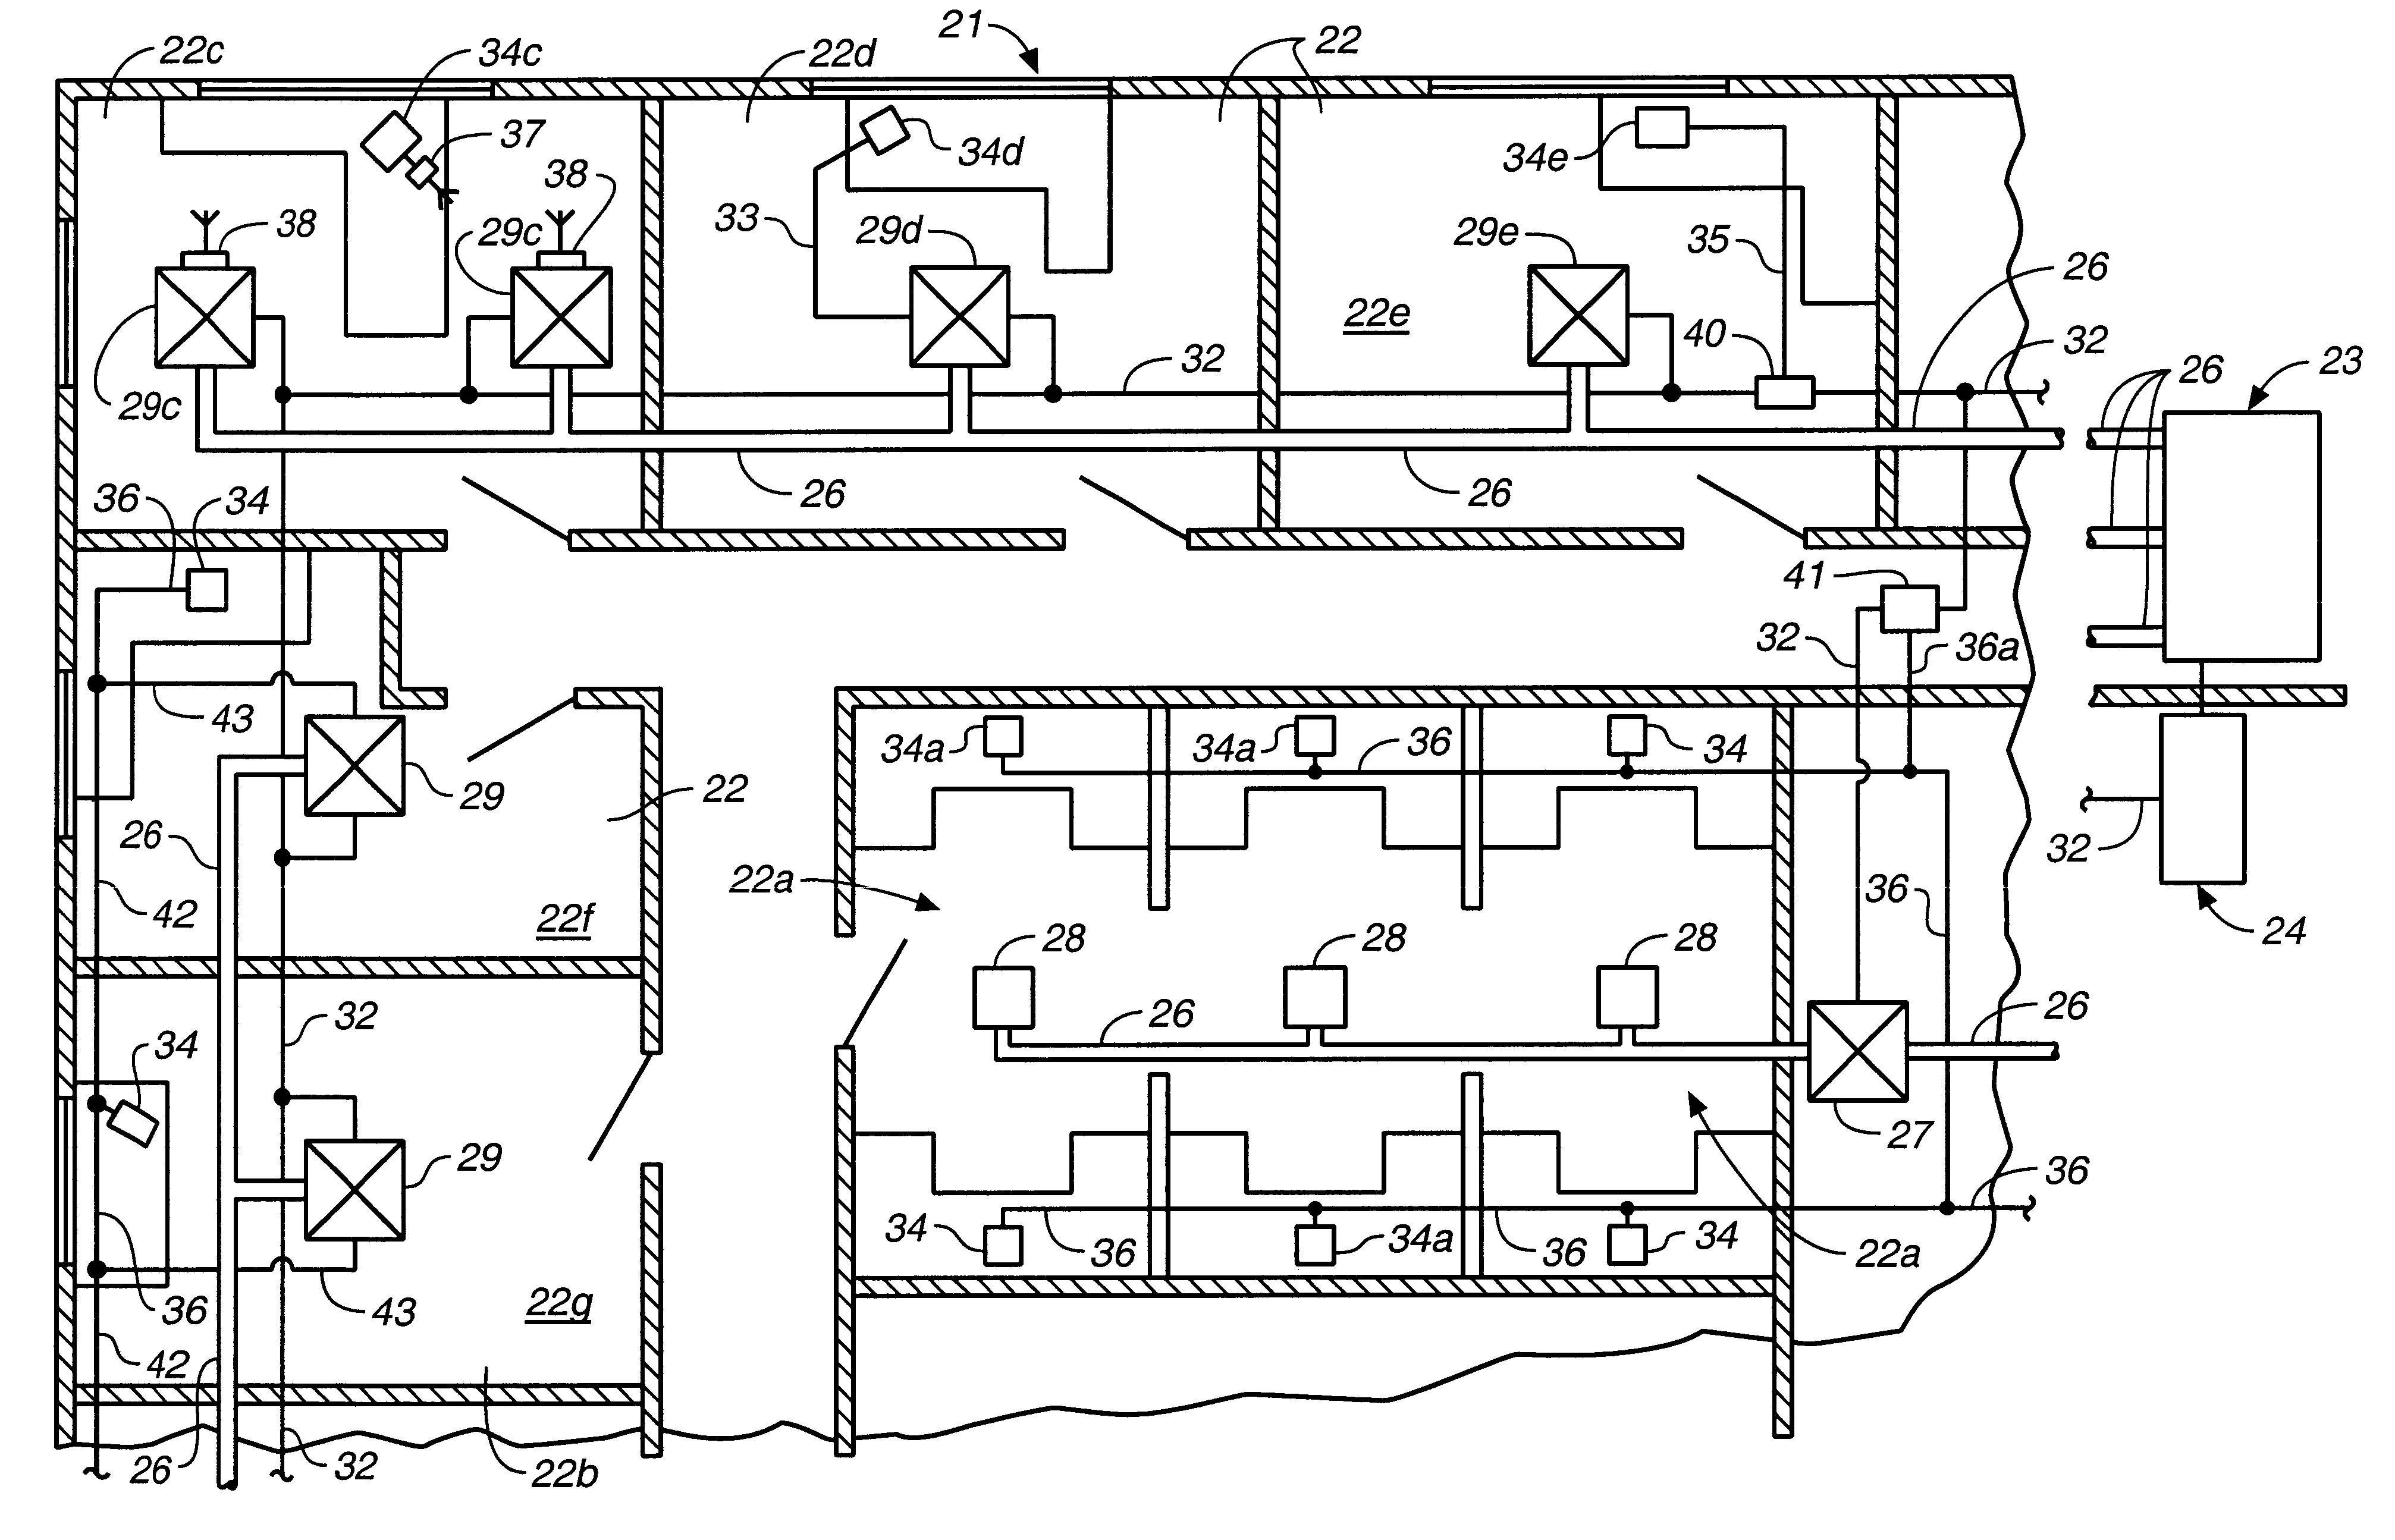 hvac controls drawing images logic diagram drawing images patent us6338437 - process and apparatus for individual ...